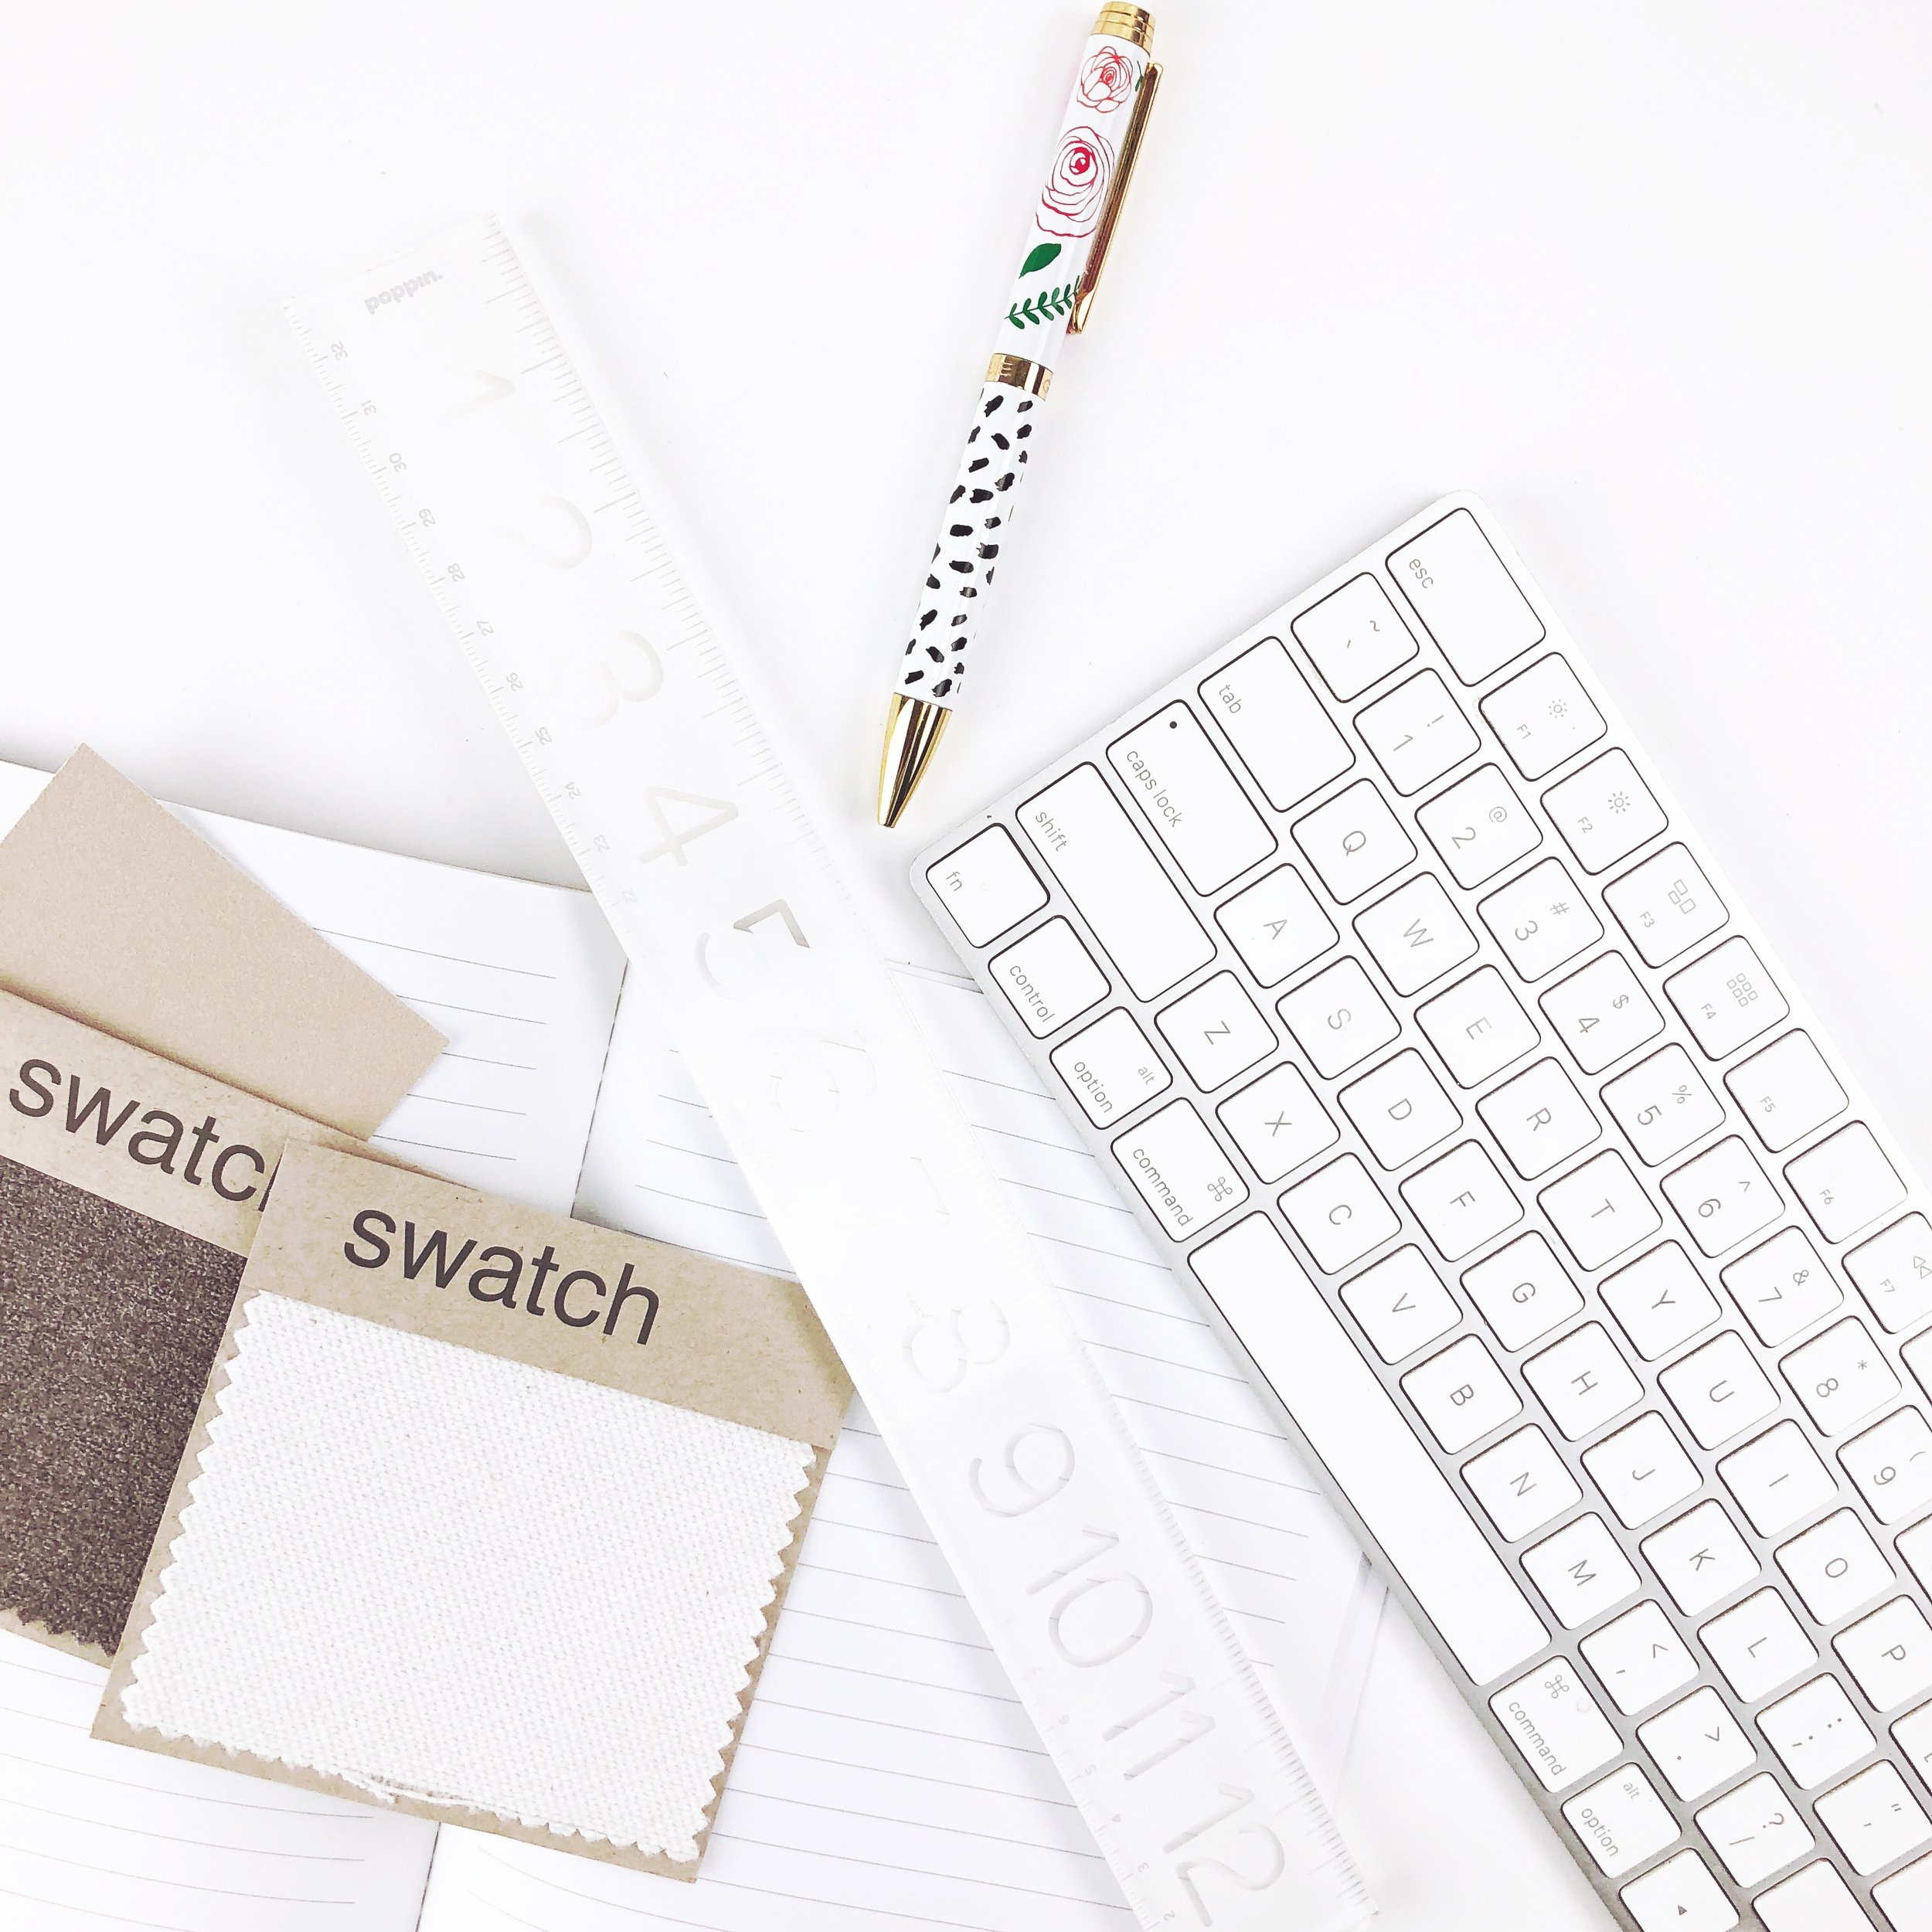 swatch desk flat lay.jpg